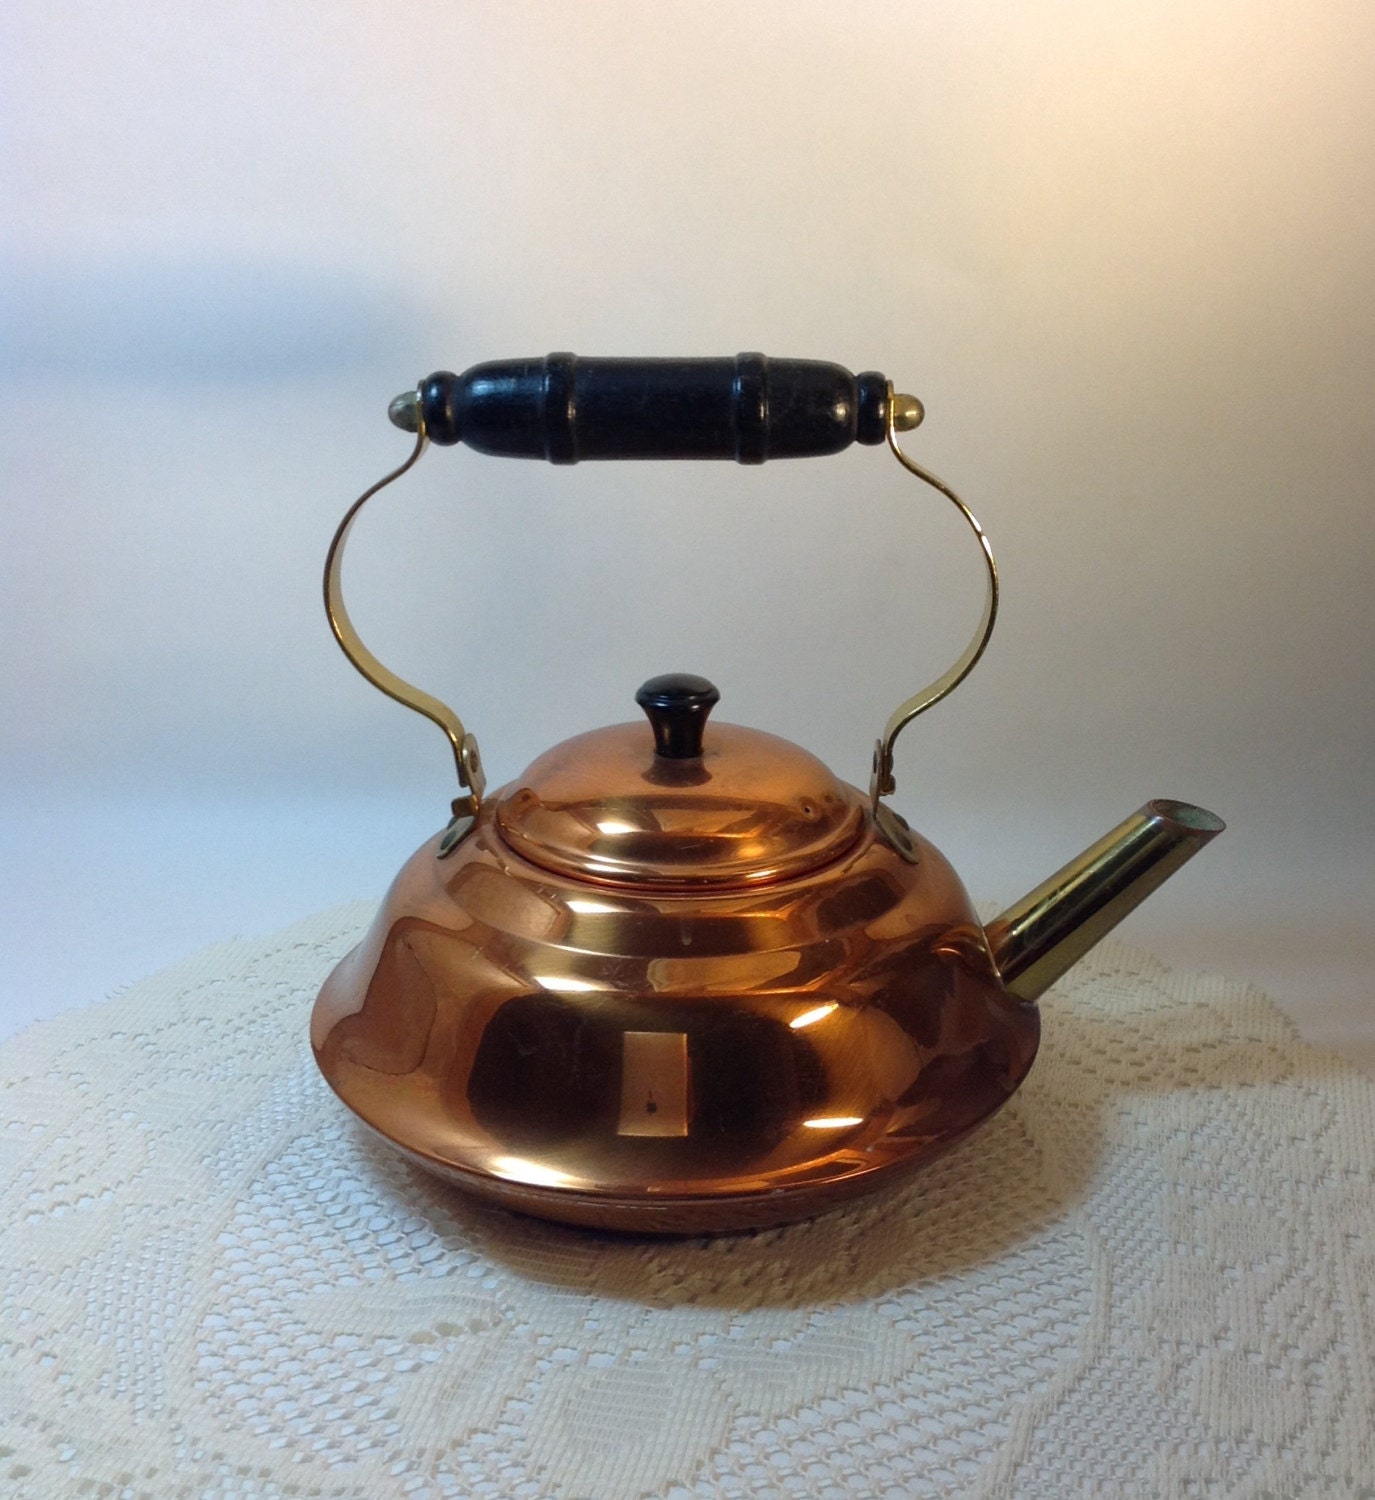 Copper Tea Kettle Decorative Accent Shabby Rustic Farmhouse. Interior Decorating Jobs. Traverse City Rooms For Rent. Decorative Interior Columns. Nautical Themed Home Decor. Decorative Tissue Paper Wholesale. Bed Linen Decorating Ideas. Hgtv Home Decorating. Patriotic Home Decor